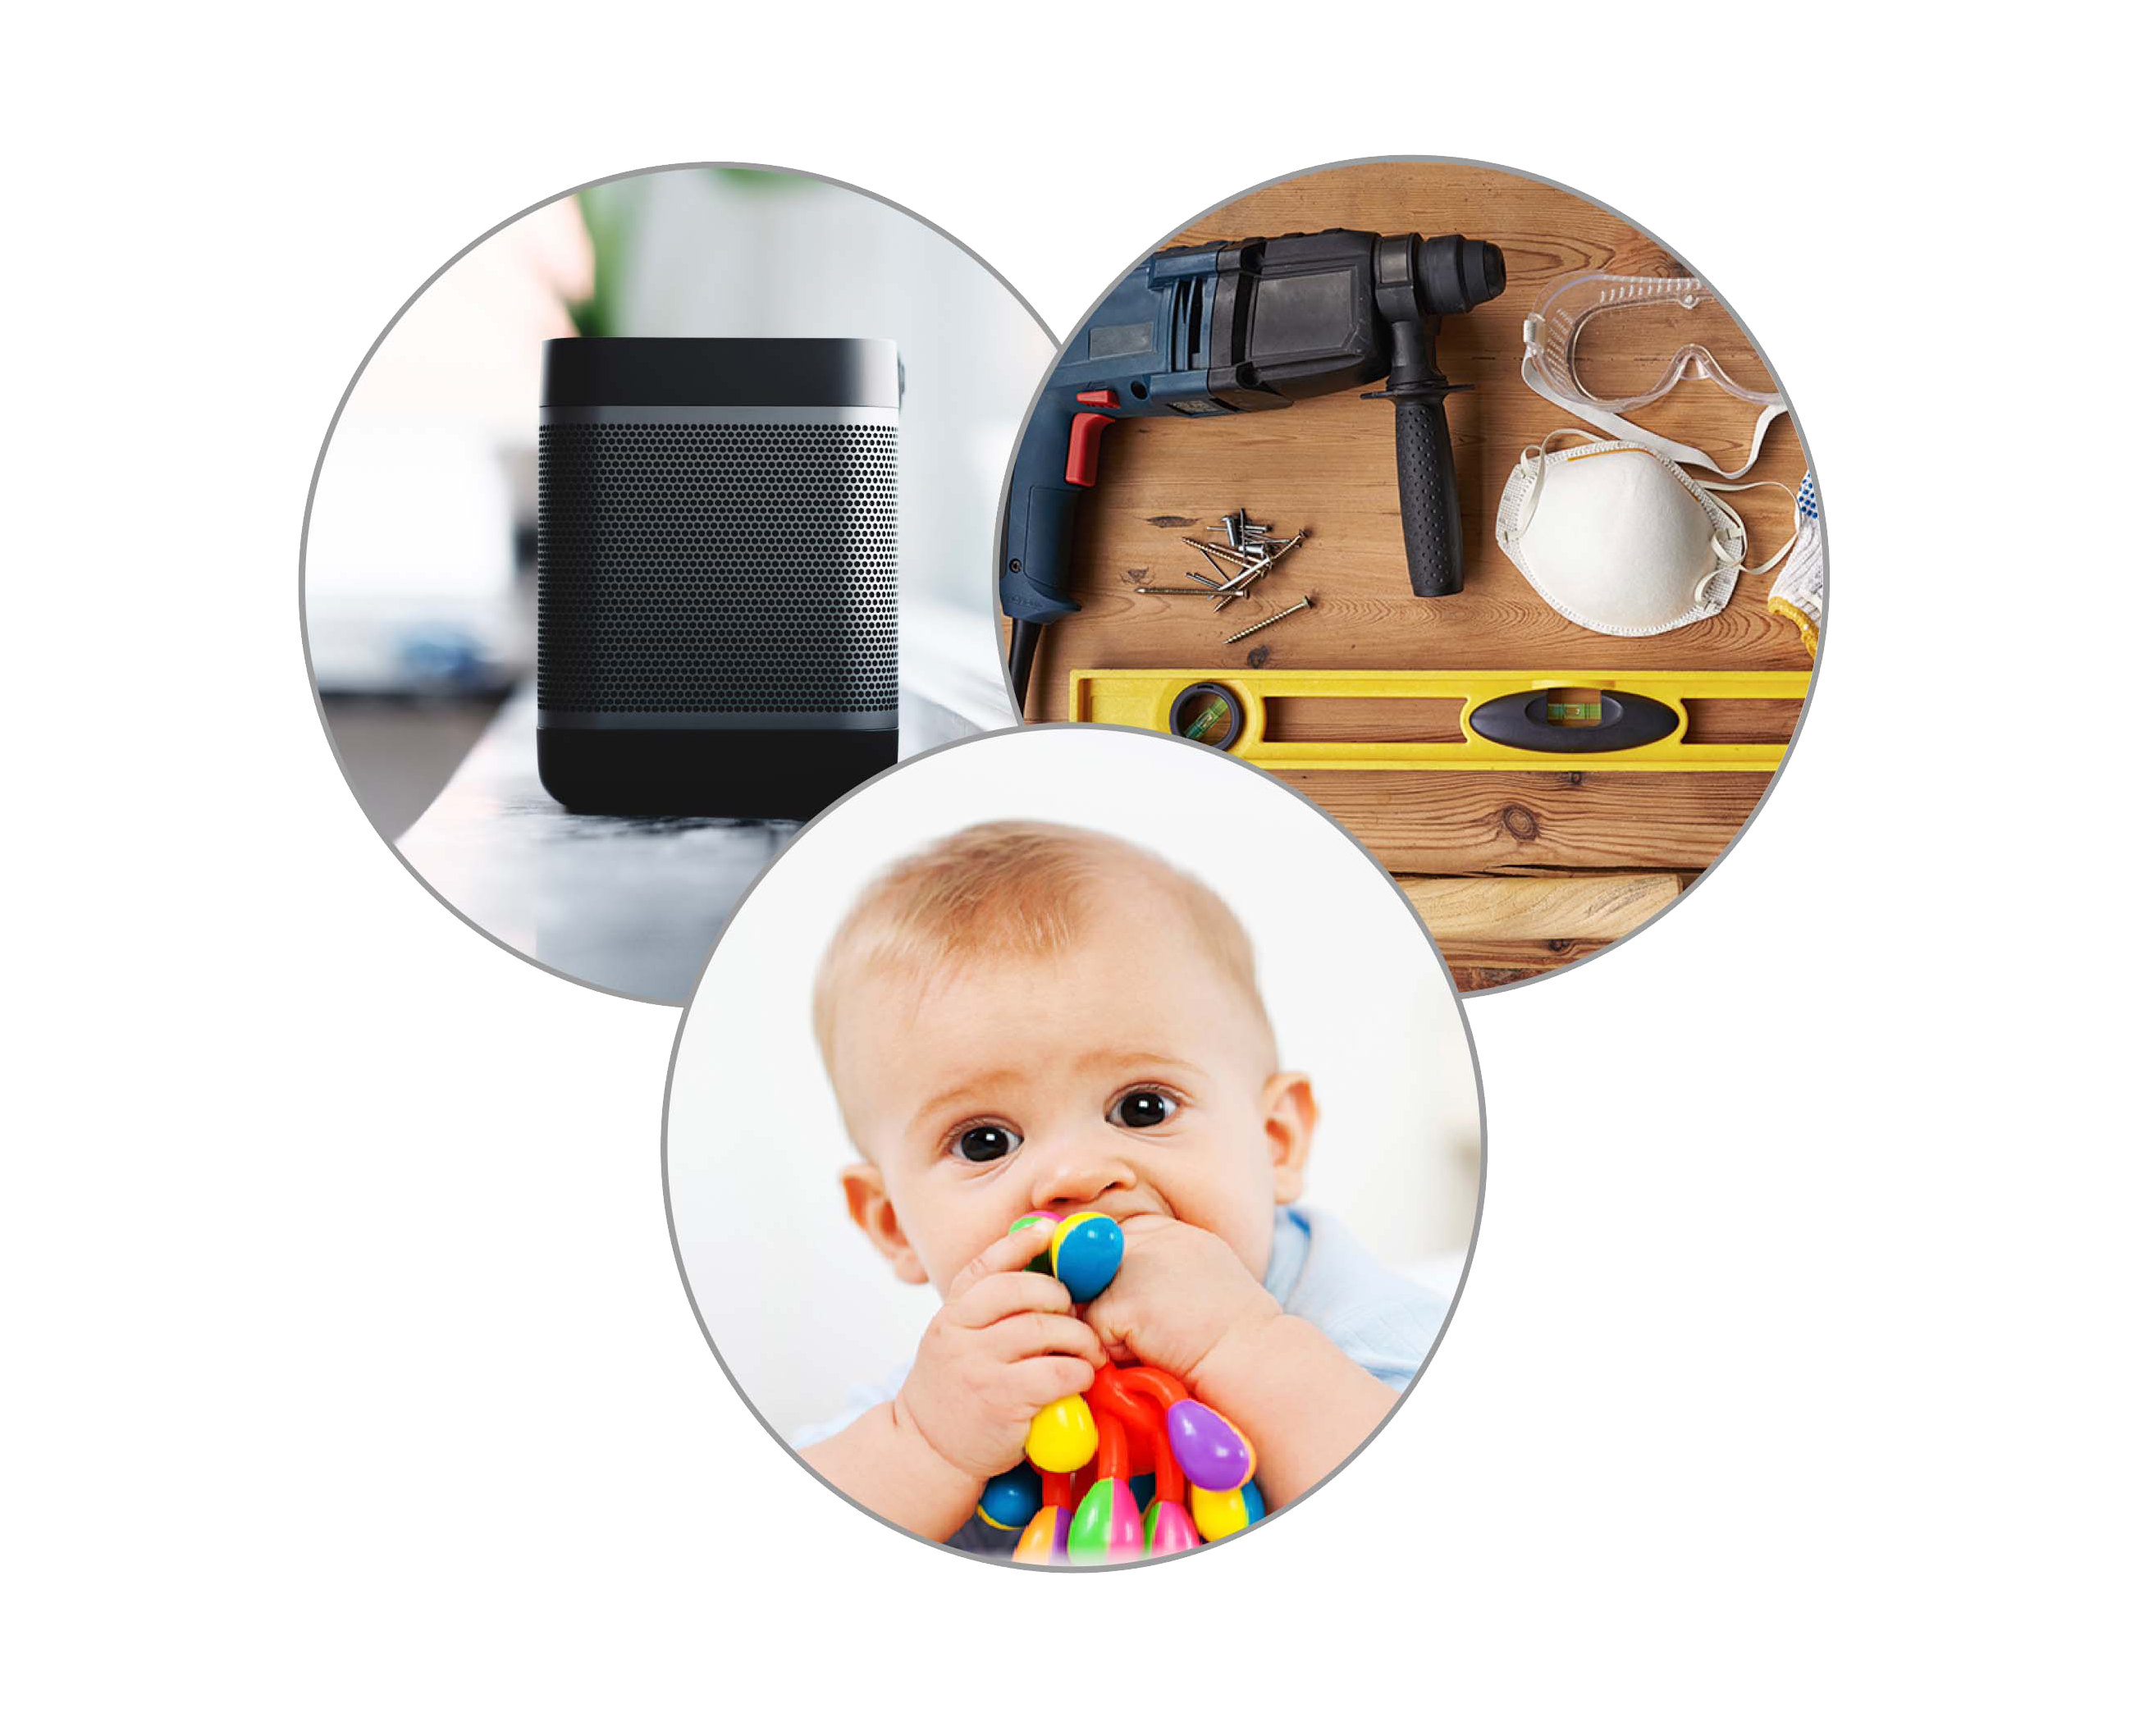 Categories such as Baby, Electronics, Hardware